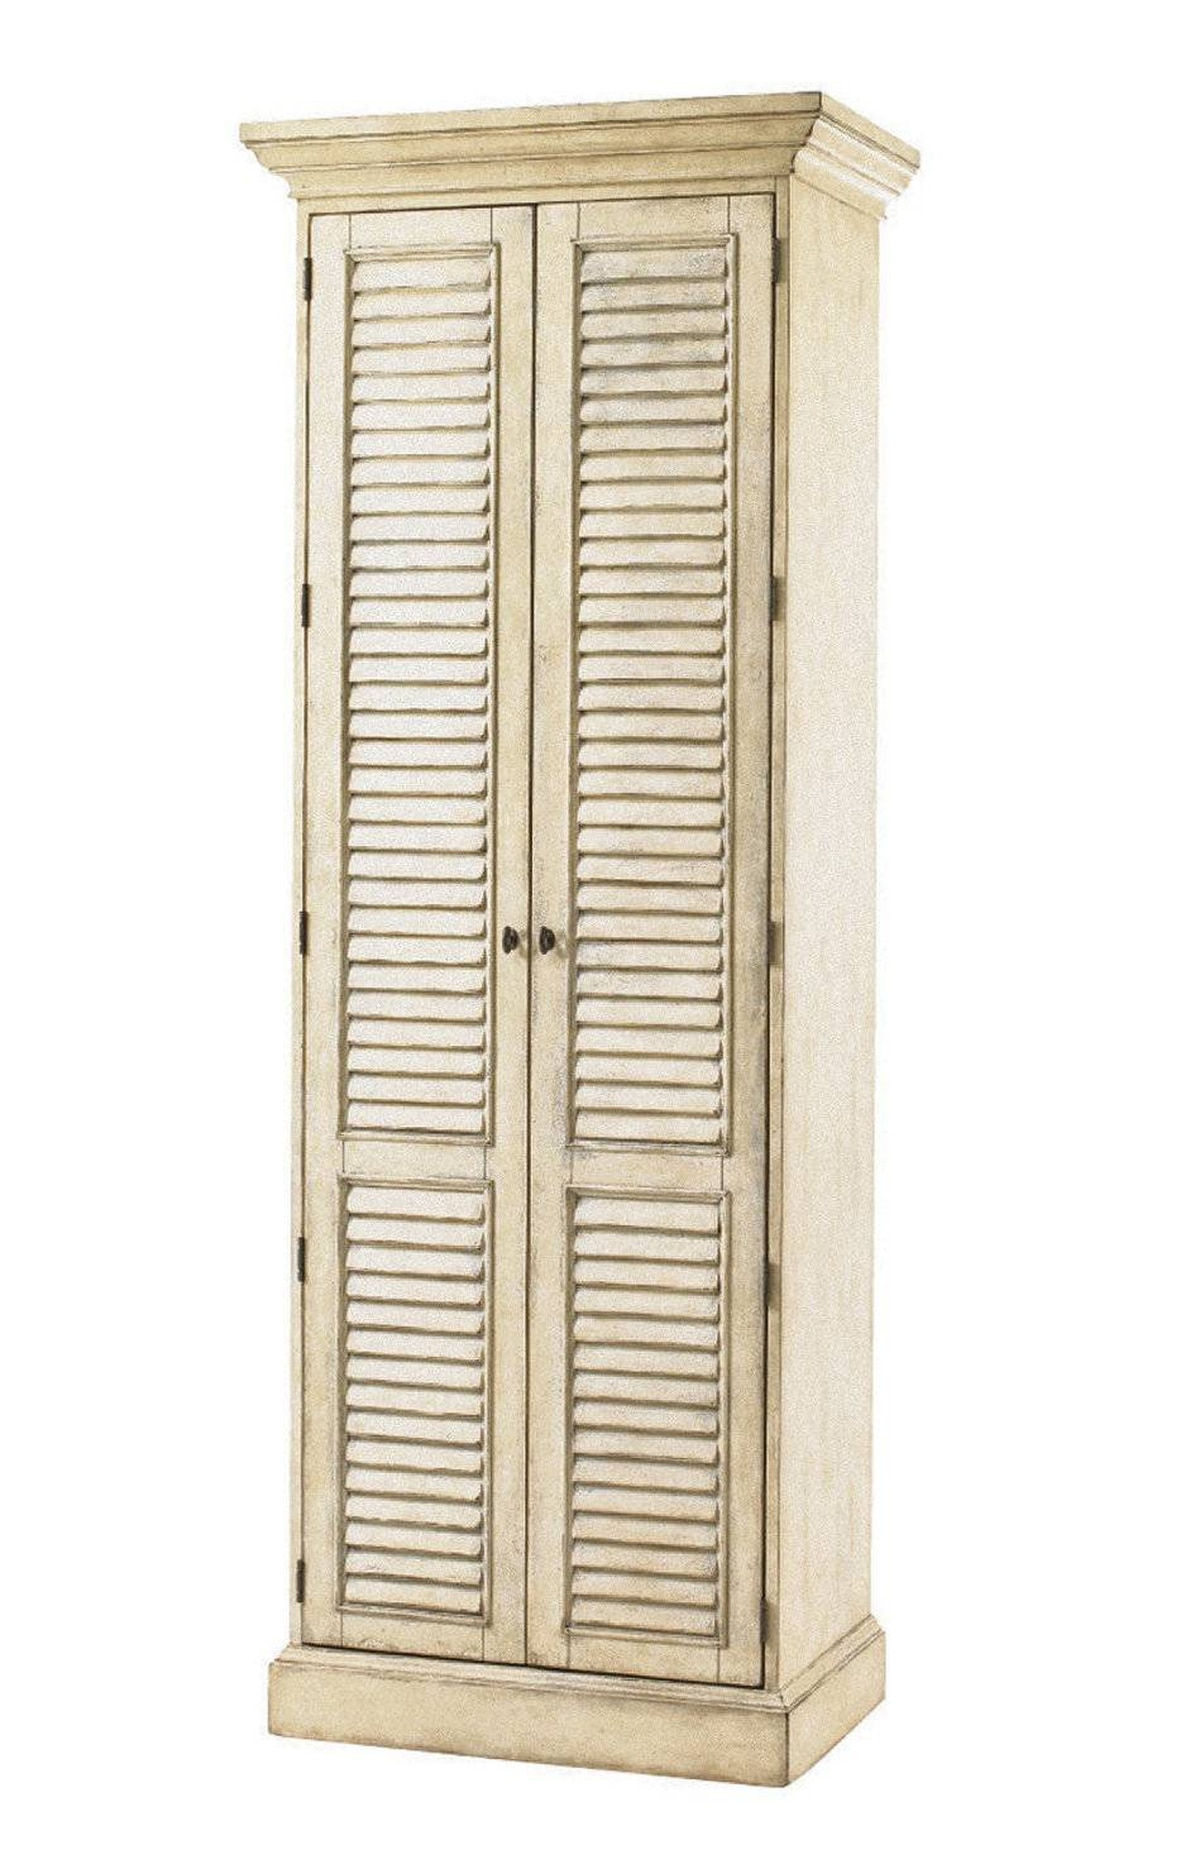 Barrymore's handsome antique-inspired Hartley Cabinet contains two lower drawers and up to 10 shelves hidden behind a pair of dramatic full-length louvered doors. $2,960 at Barrymore Furniture (www. barrymorefurniture.com).